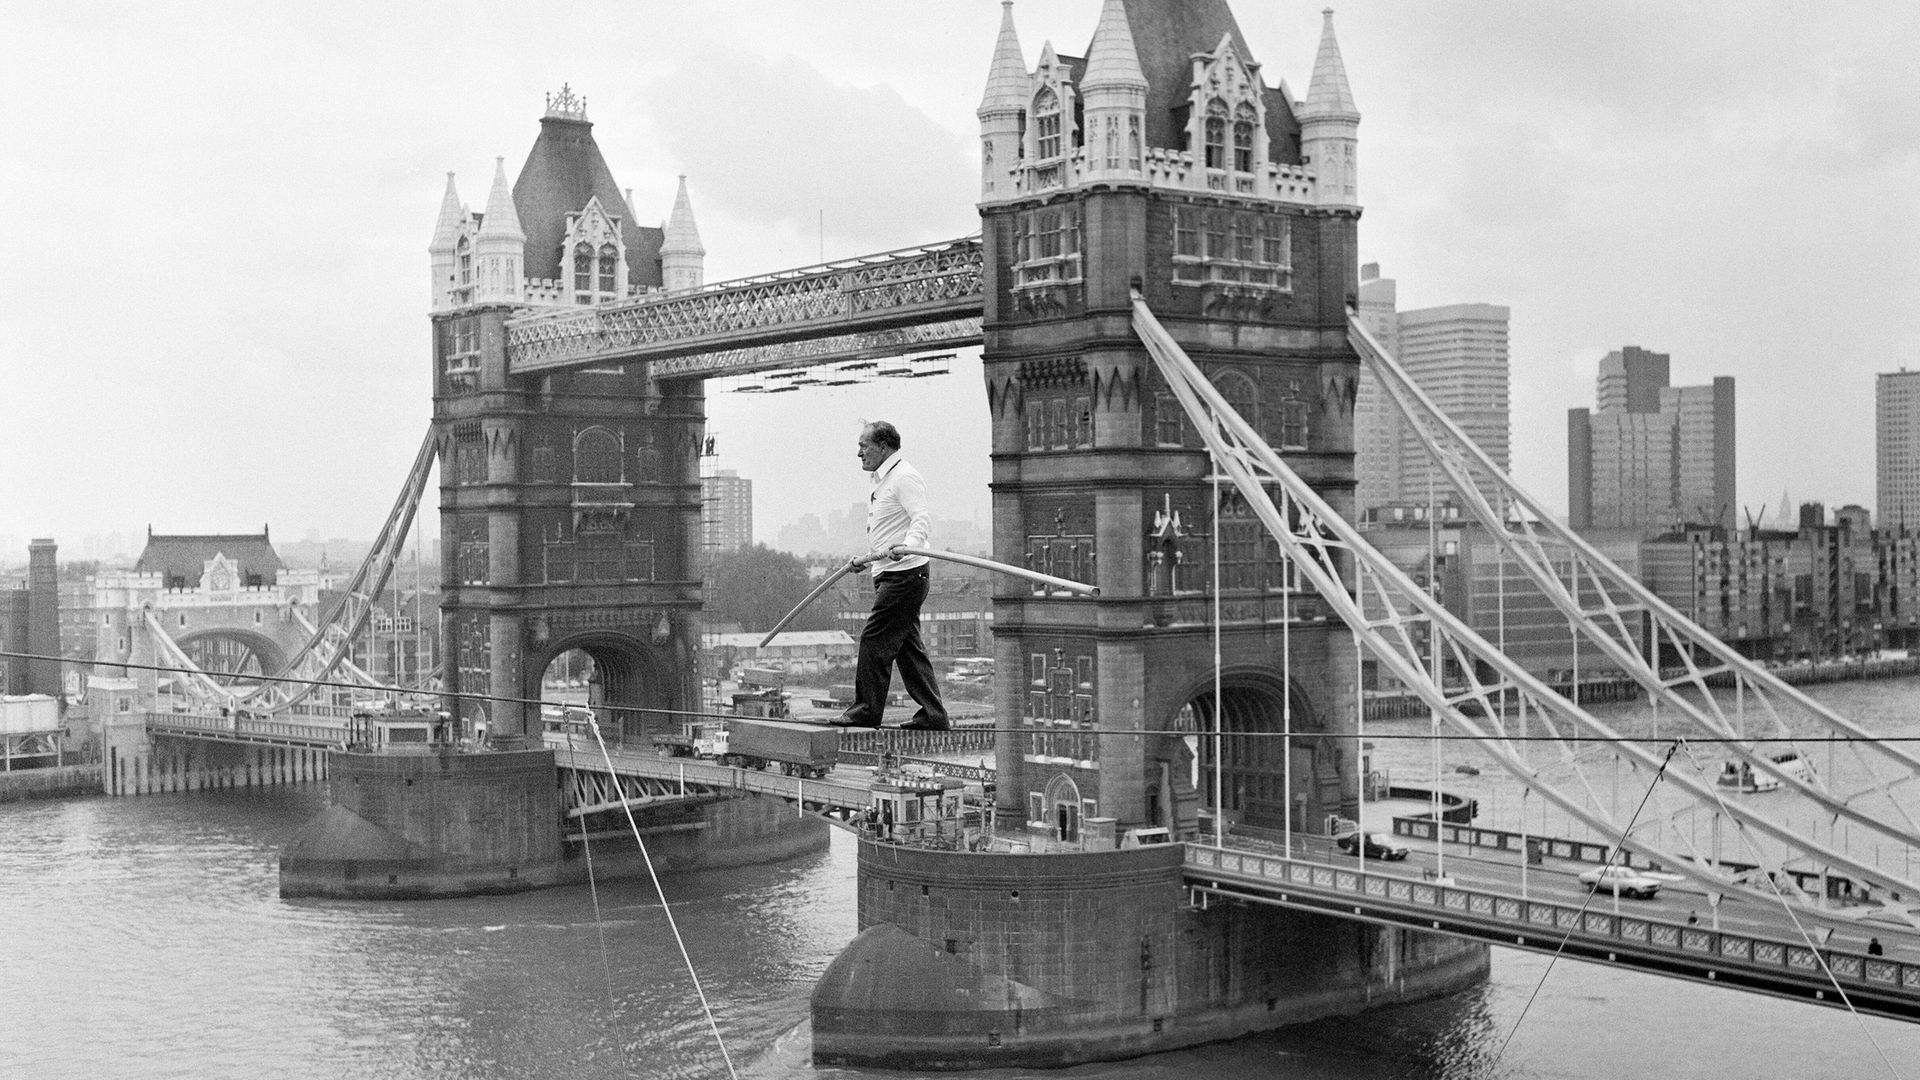 Karl Wallenda on a tightrope 100ft above the ground, near Tower Bridge, London, in 1976 - Credit: Mirrorpix via Getty Images